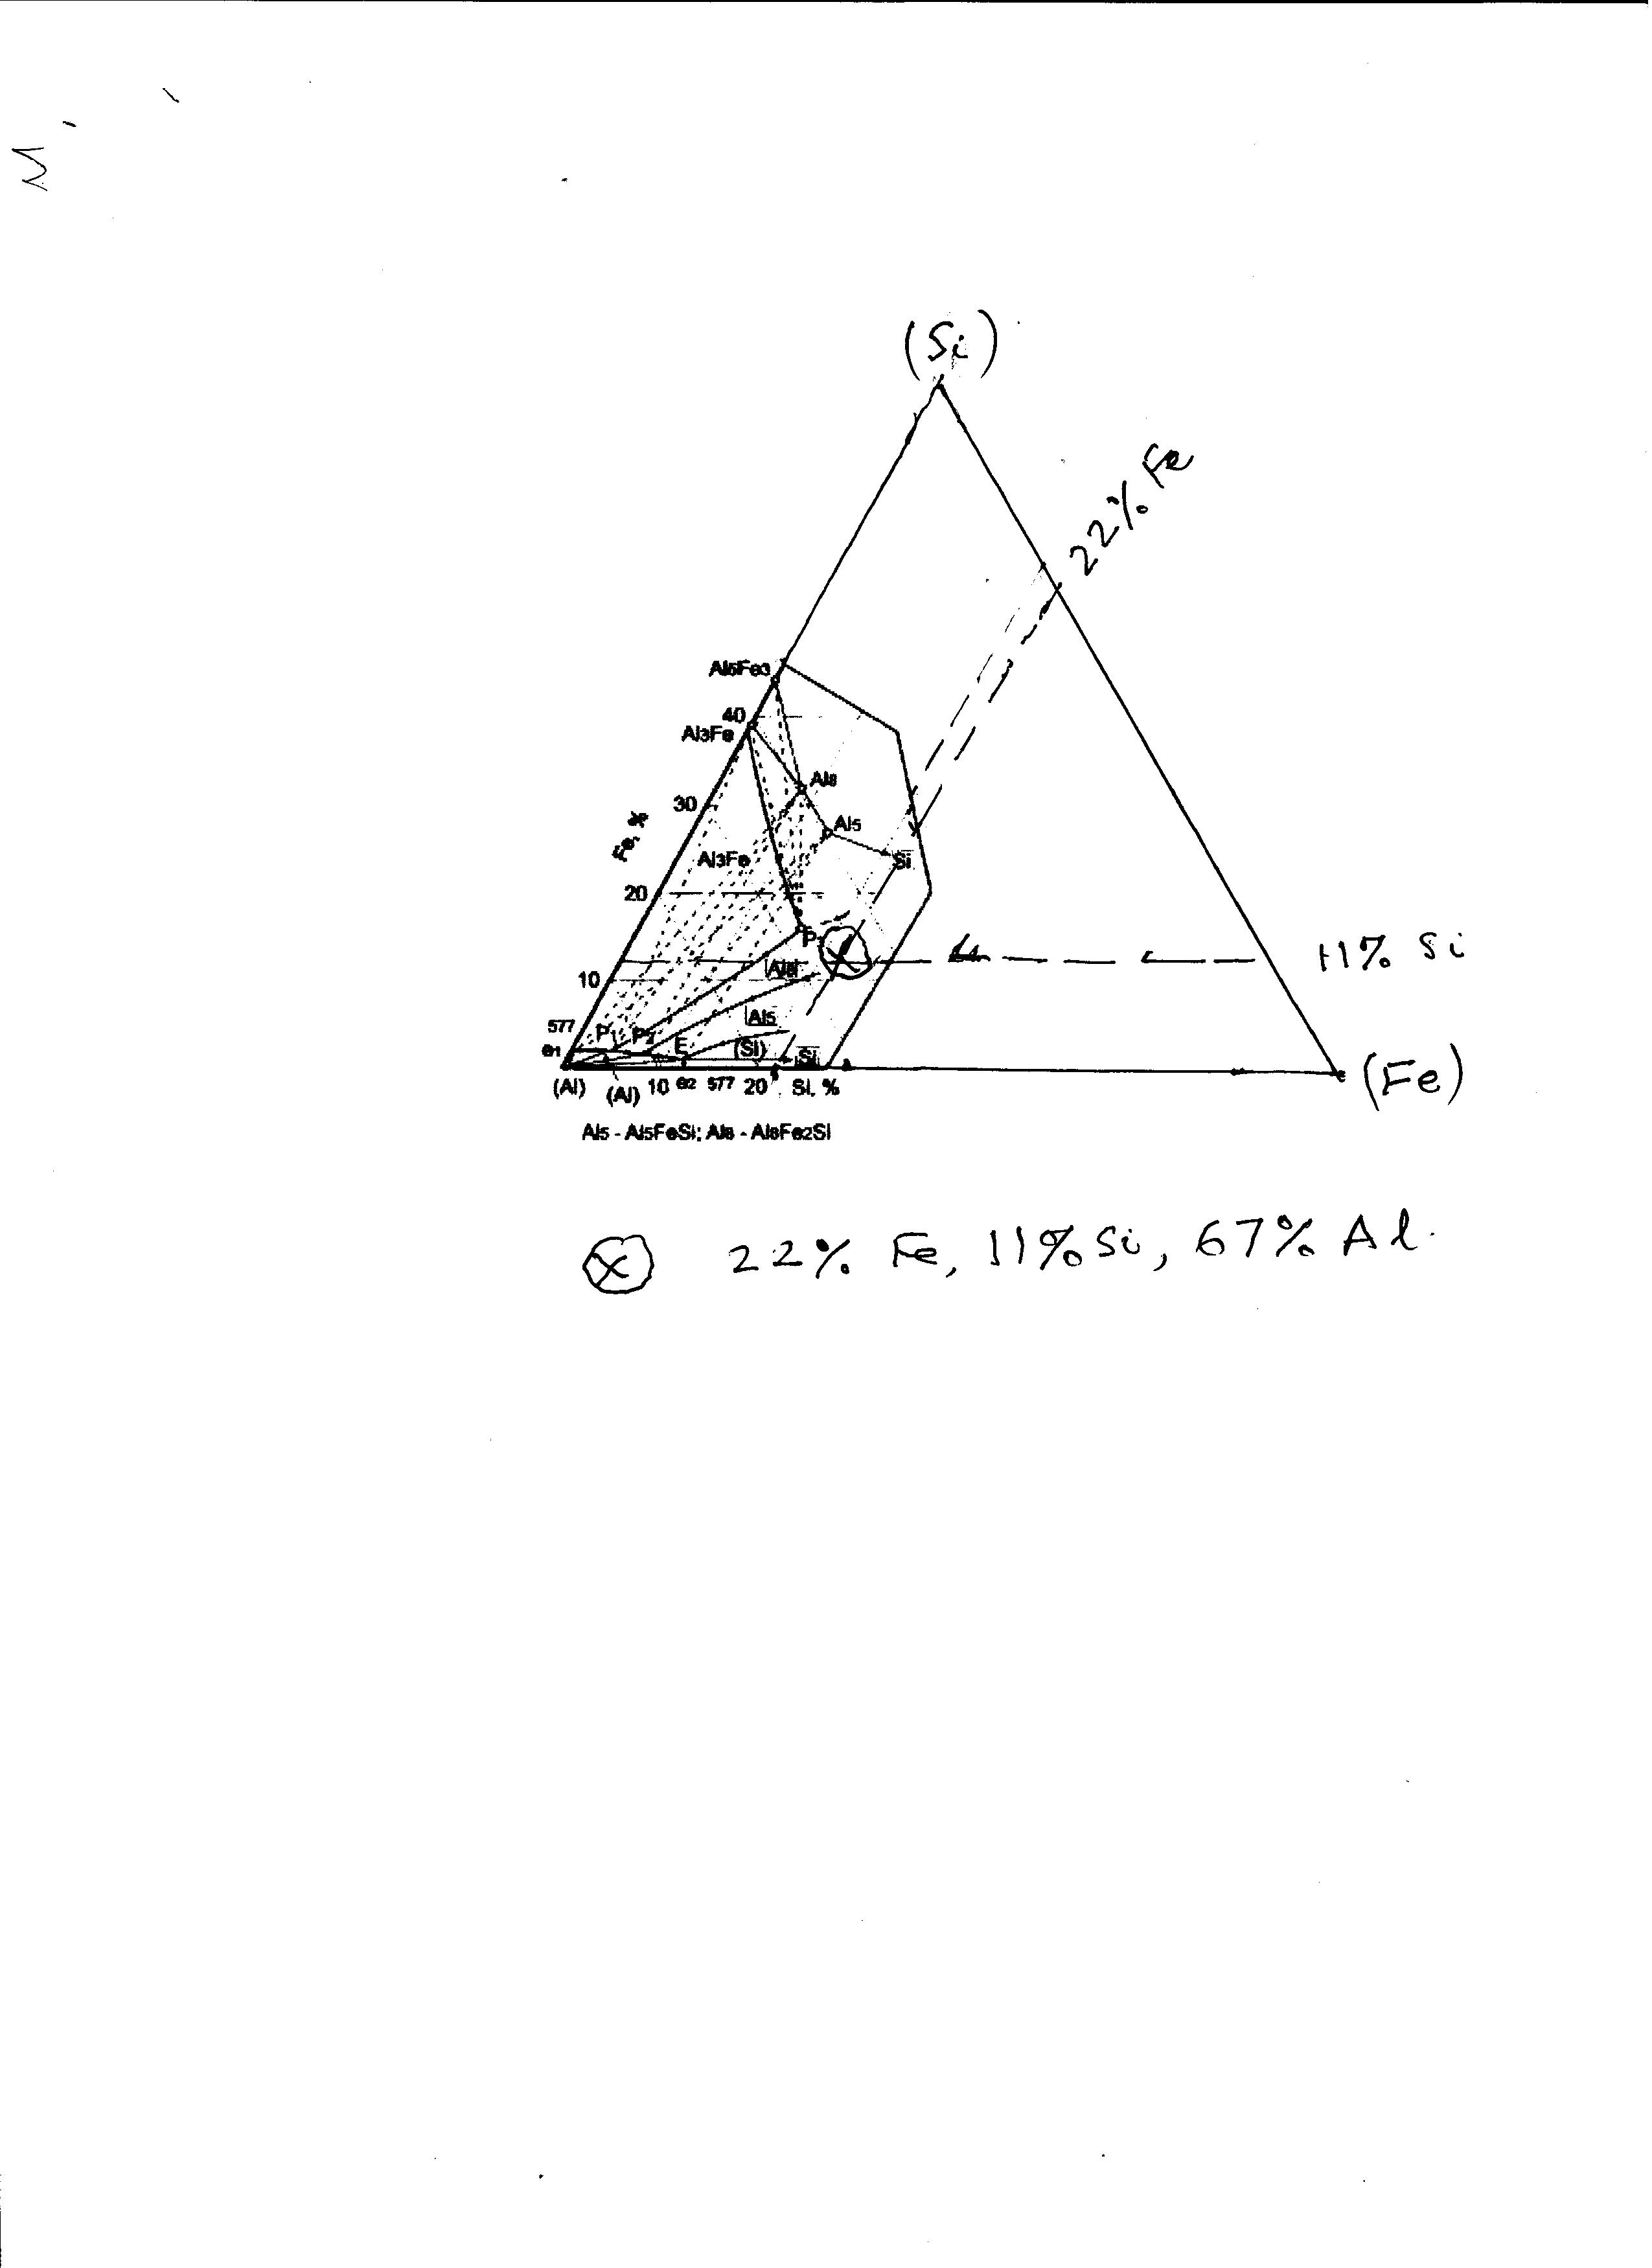 How to use the Al-Fe-Si phase diagram?